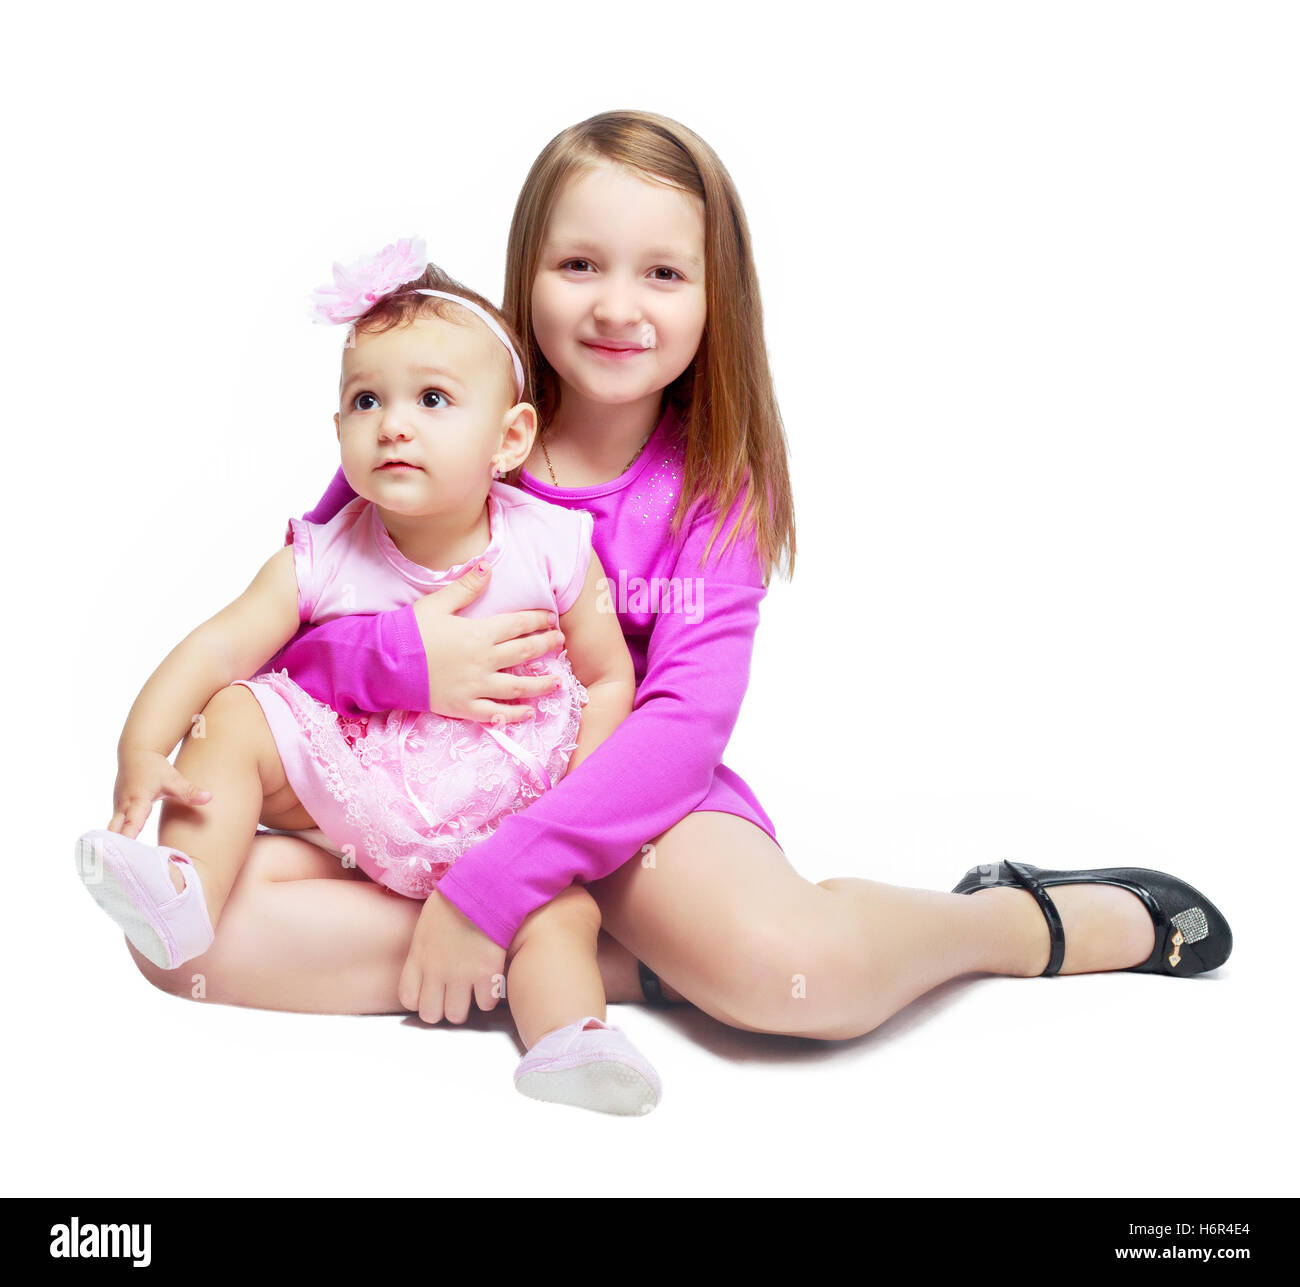 two sisters hugging, isolated against white background - Stock Image